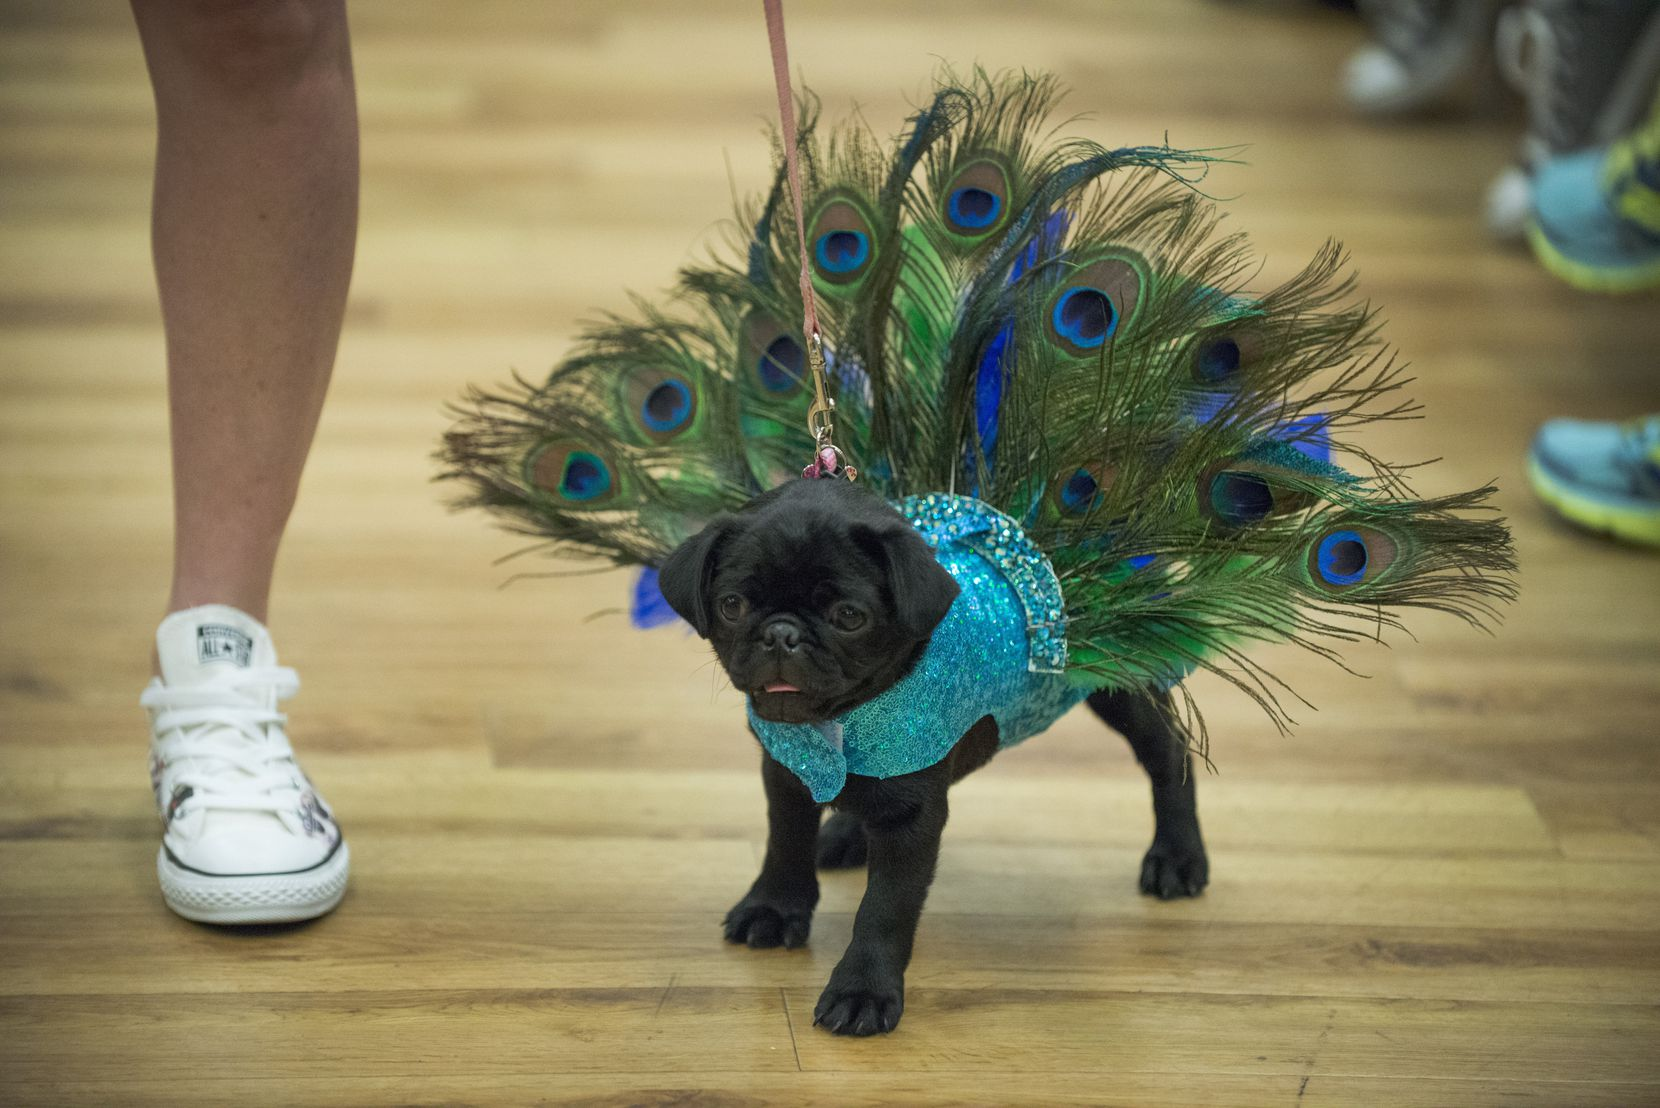 Piper walked the runway as a peacock at the 19th annual Pug-O-Ween at the Grapevine Convention Center on Oct. 11, 2015.